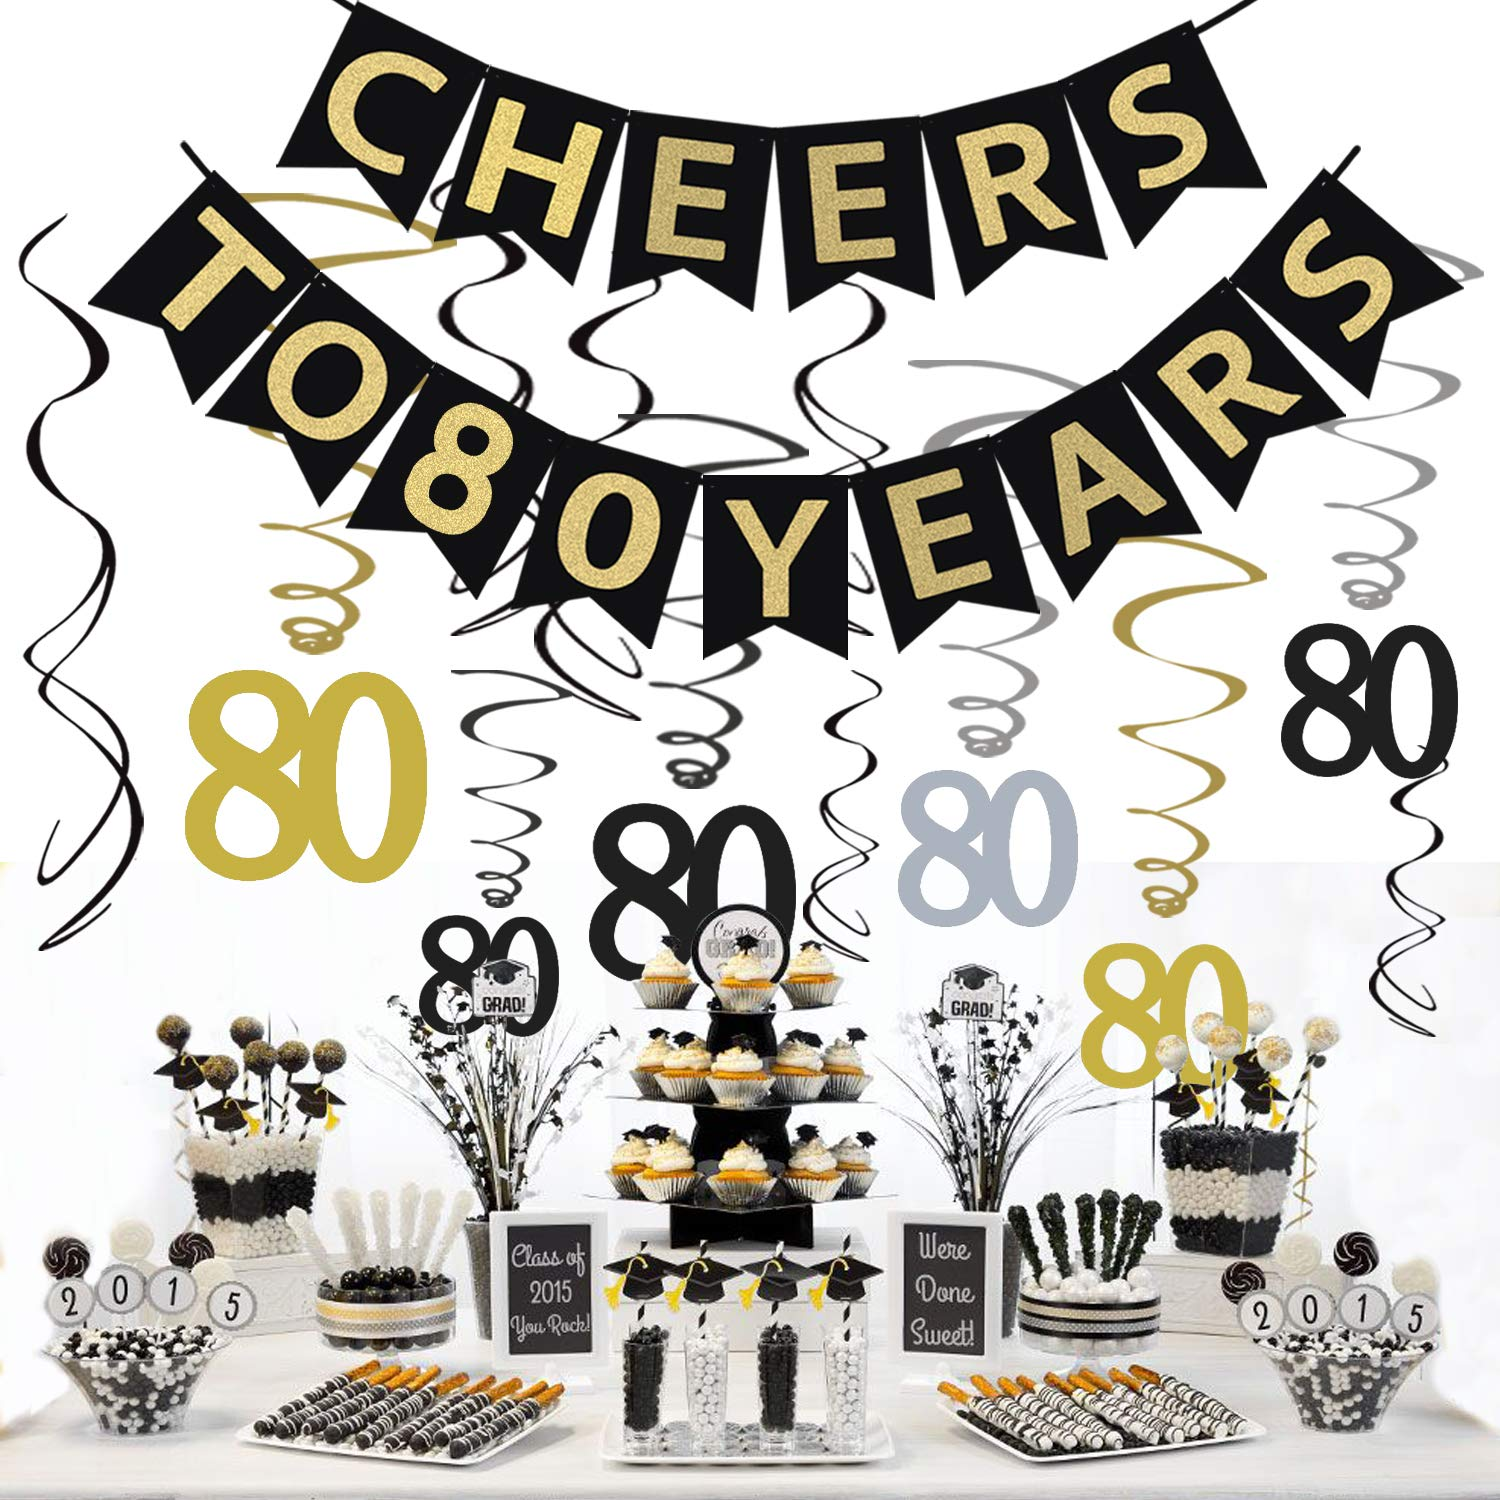 Tuoyi 80th Birthday Party Decorations KIT - Cheers to 80 Years Banner, Sparkling Celebration 80 Hanging Swirls, Perfect 80 Years Old Party Supplies 80th Anniversary Decorations by Tuoyi (Image #5)